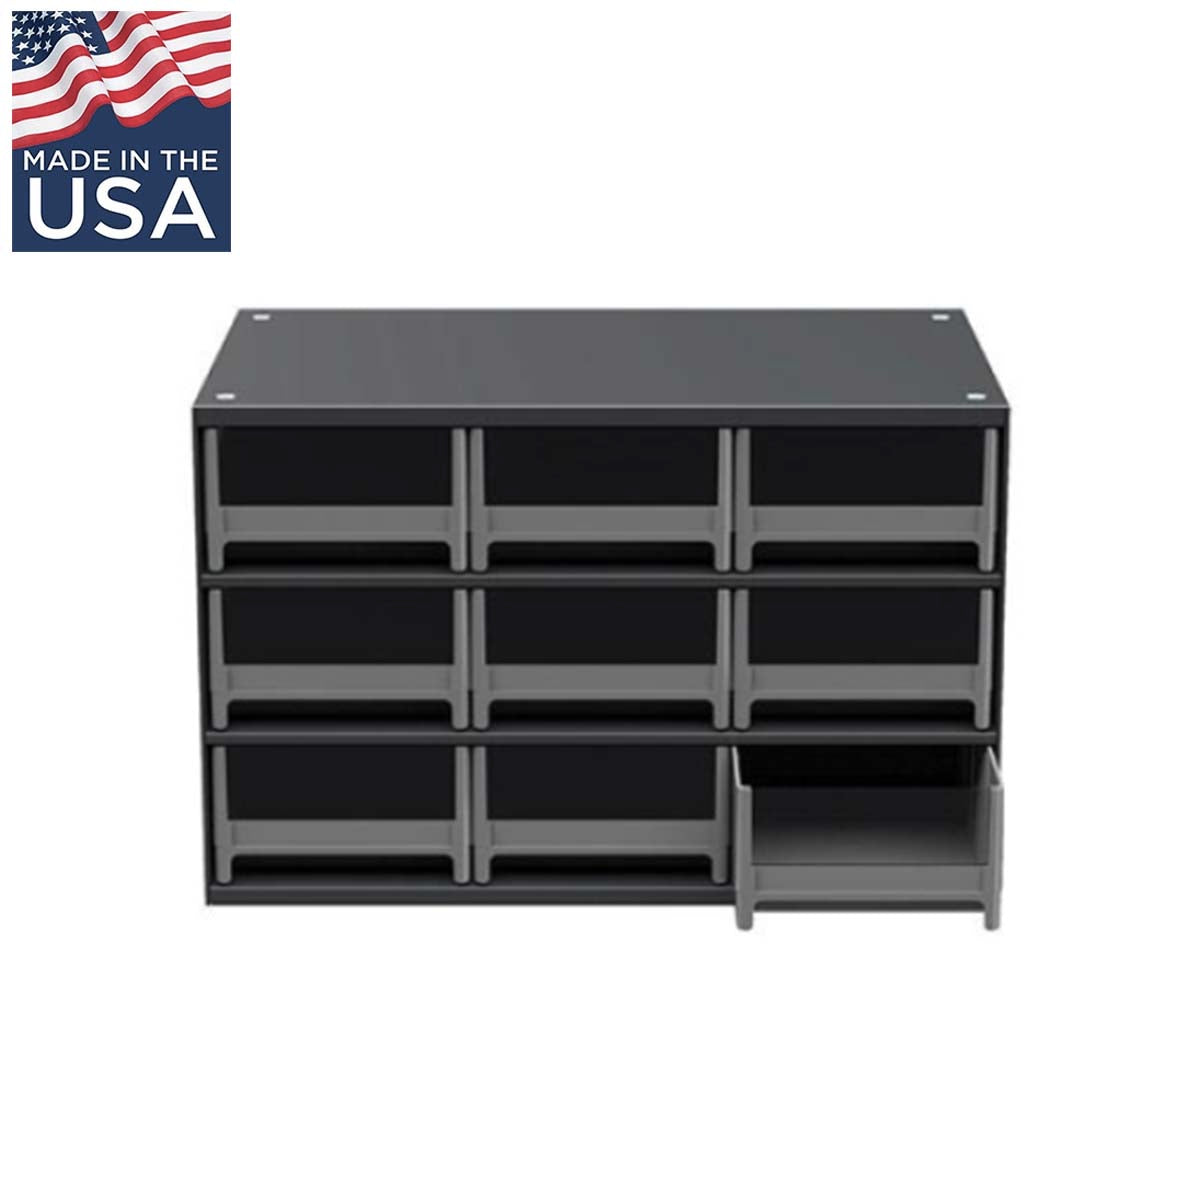 AKRO-MILS 19-Series Steel Cabinet with 9 Drawers